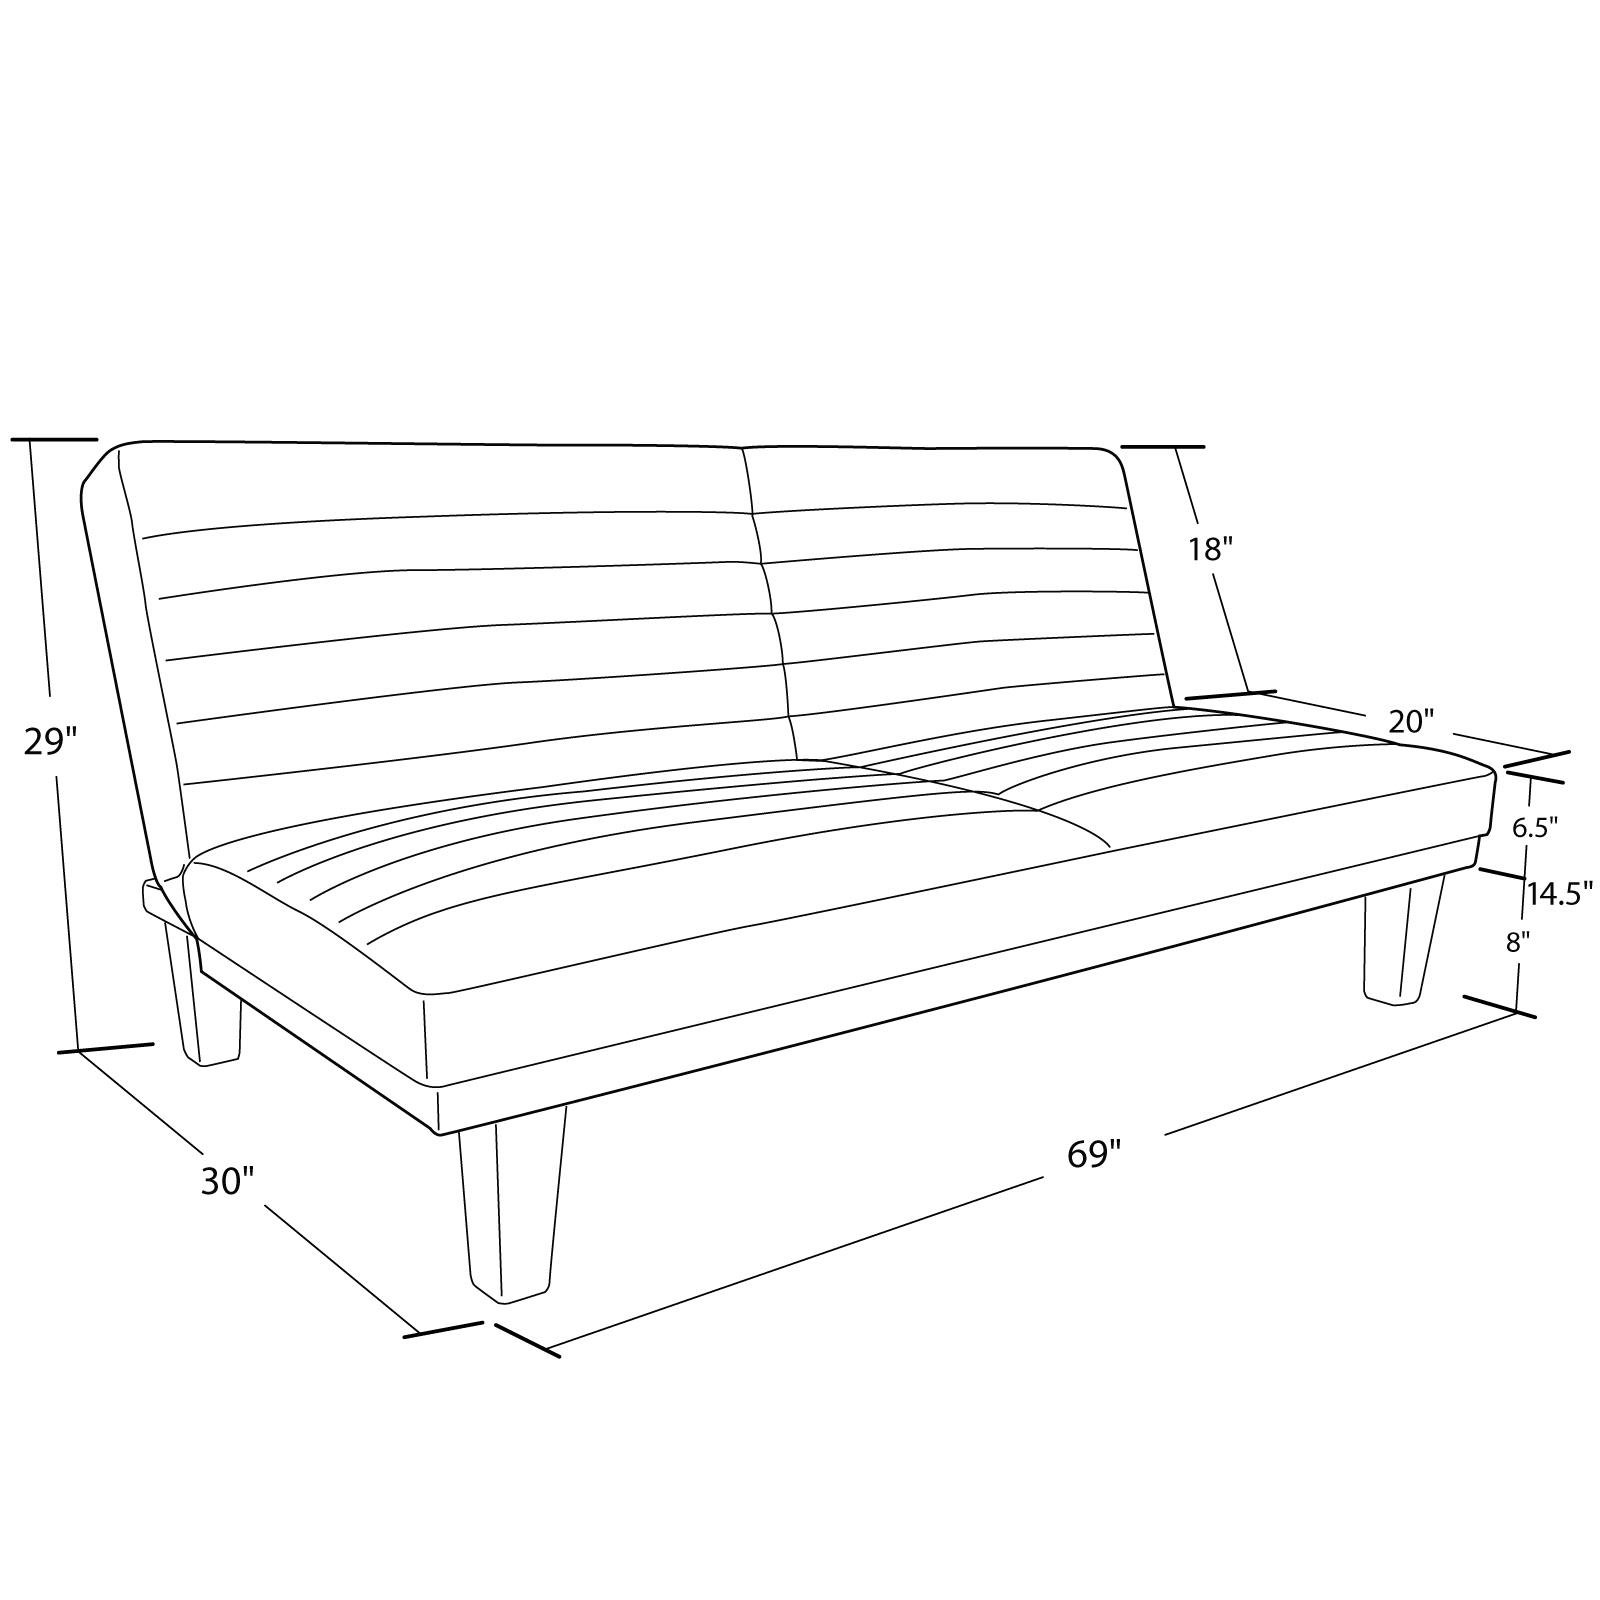 DHP Dillan Convertible Futon Couch Bed with Microfiber Upholstery and Wood Legs - Grey by DHP (Image #8)